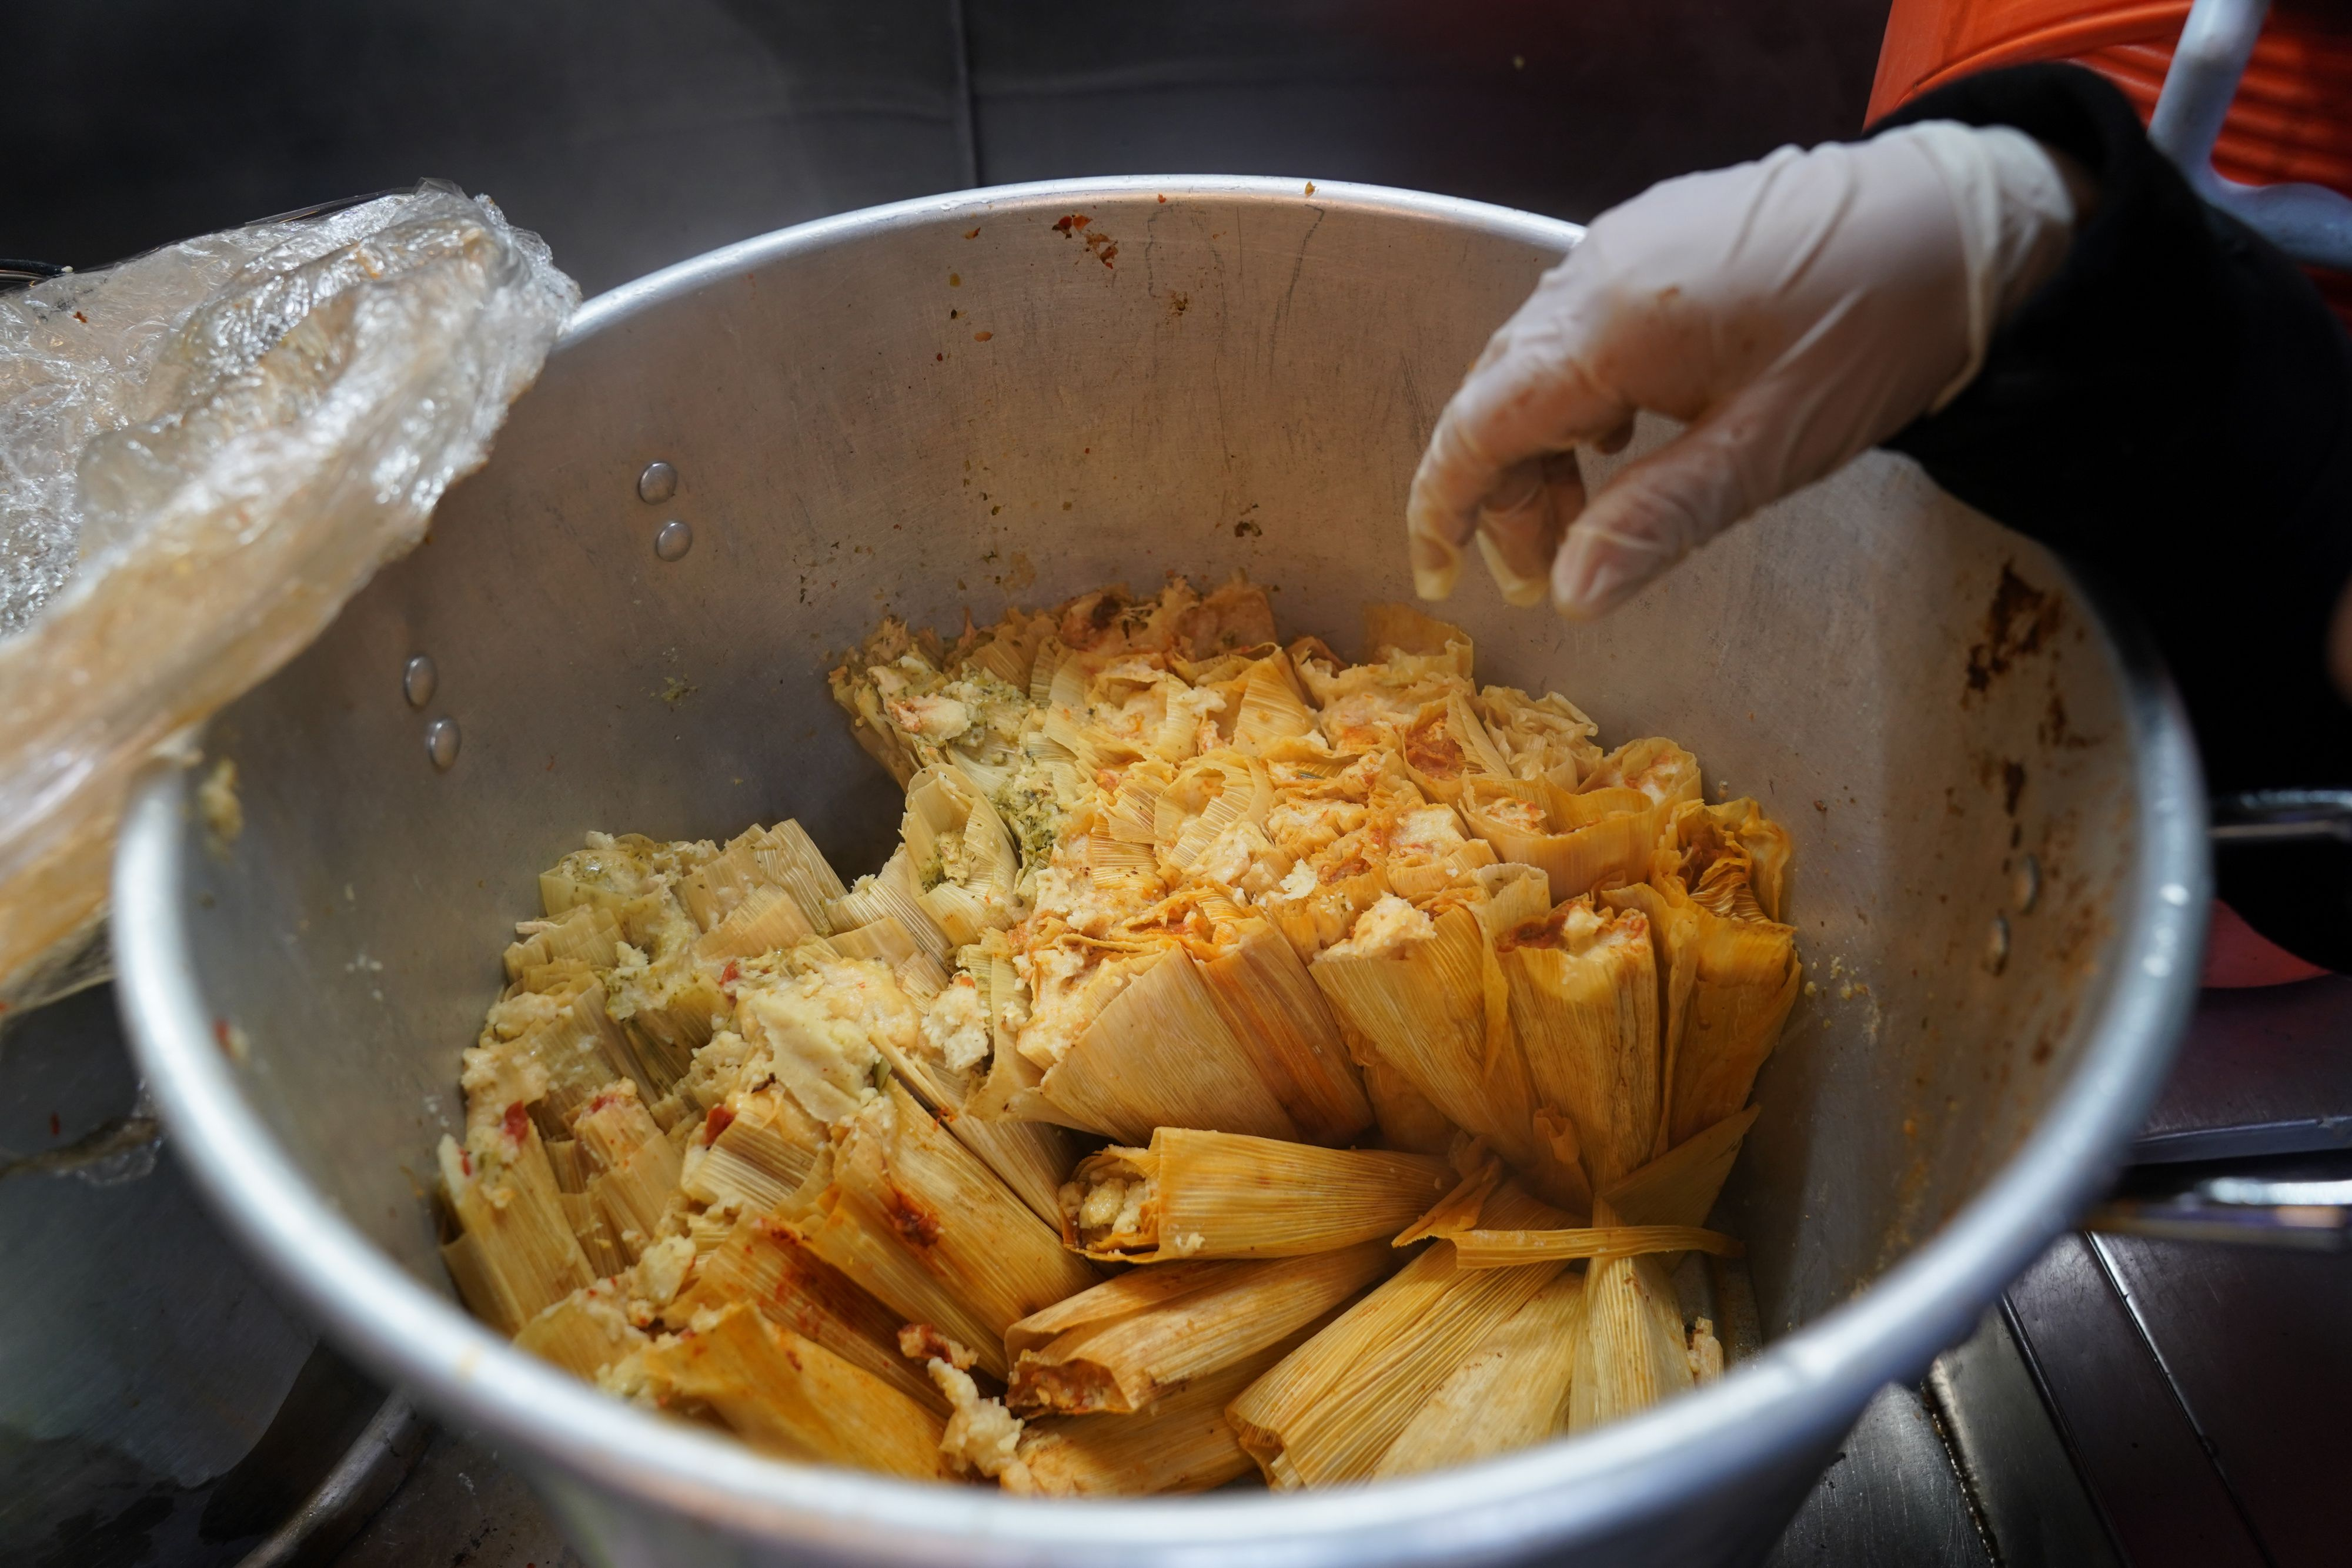 A gloved hand reaches into a steaming stainless steel pot of tamales, which are still wrapped in their husks